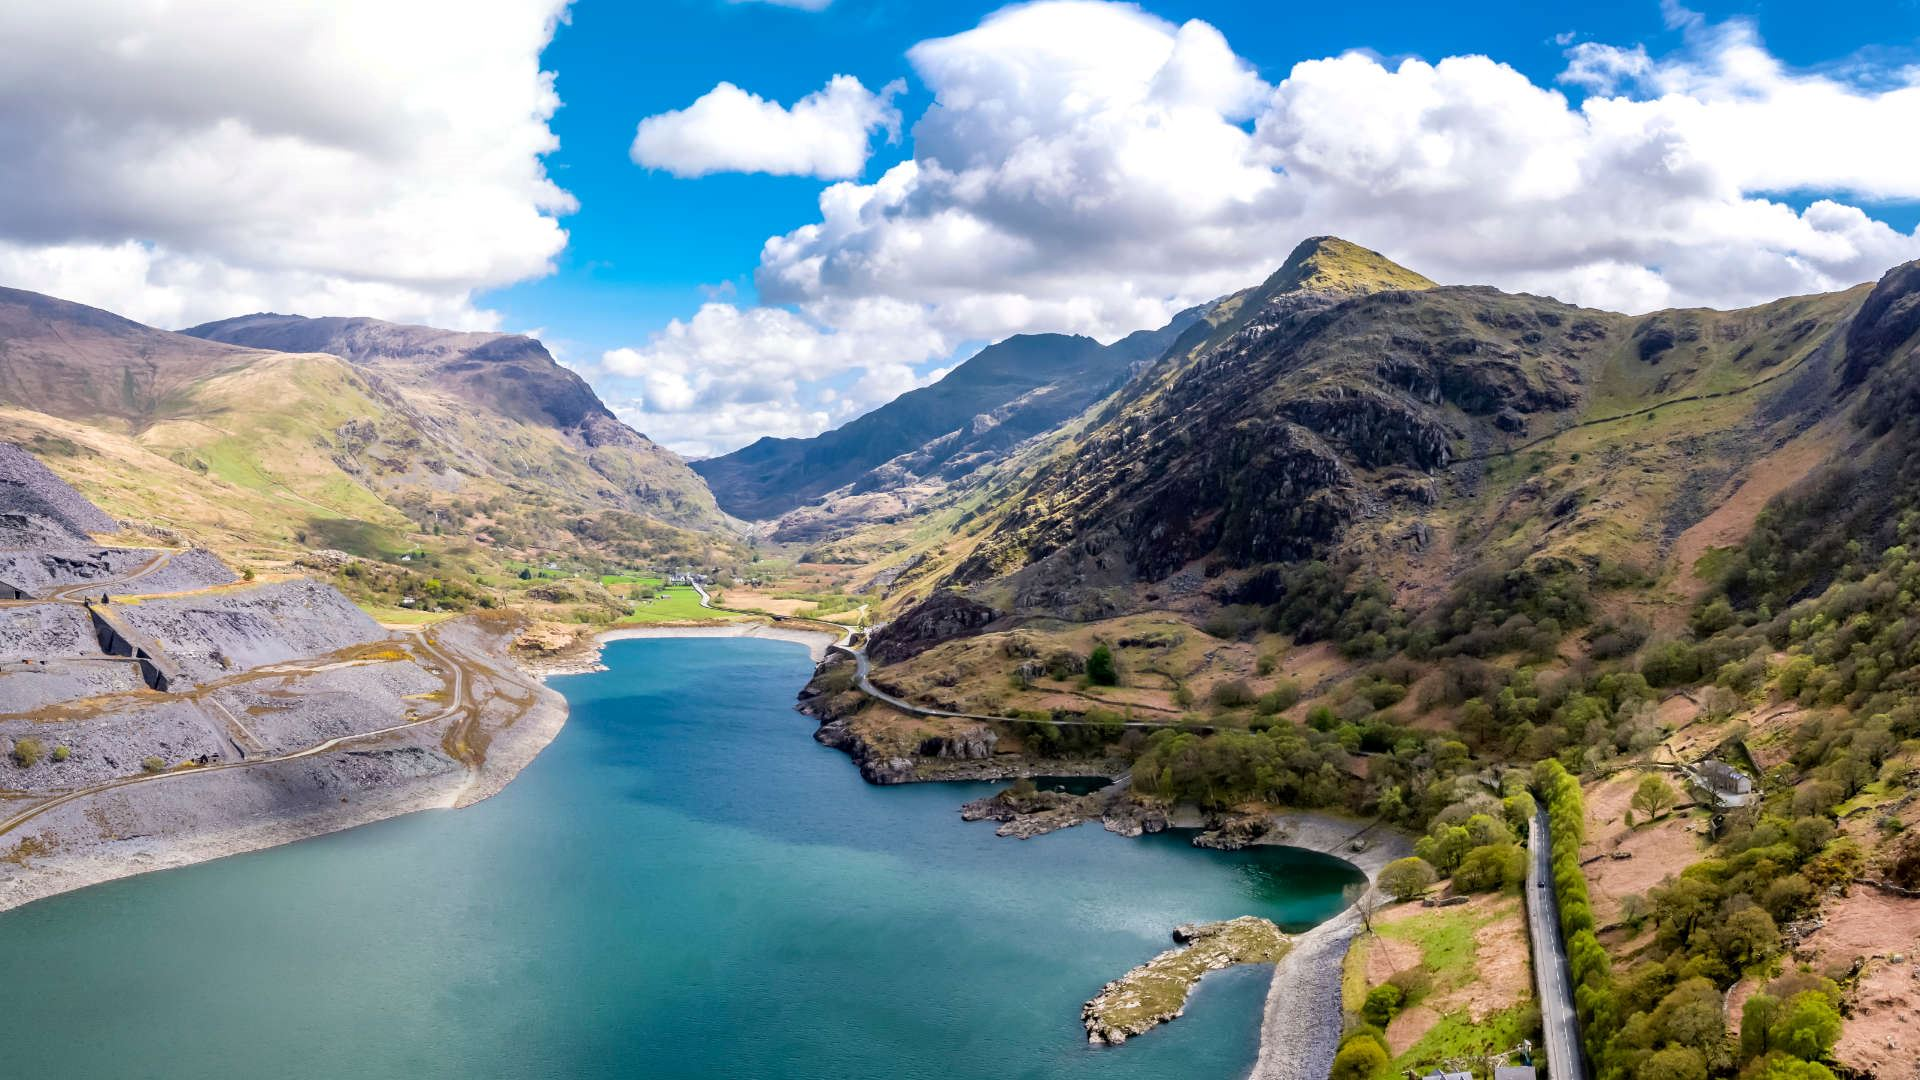 alt=Snowdonia National Park in Wales